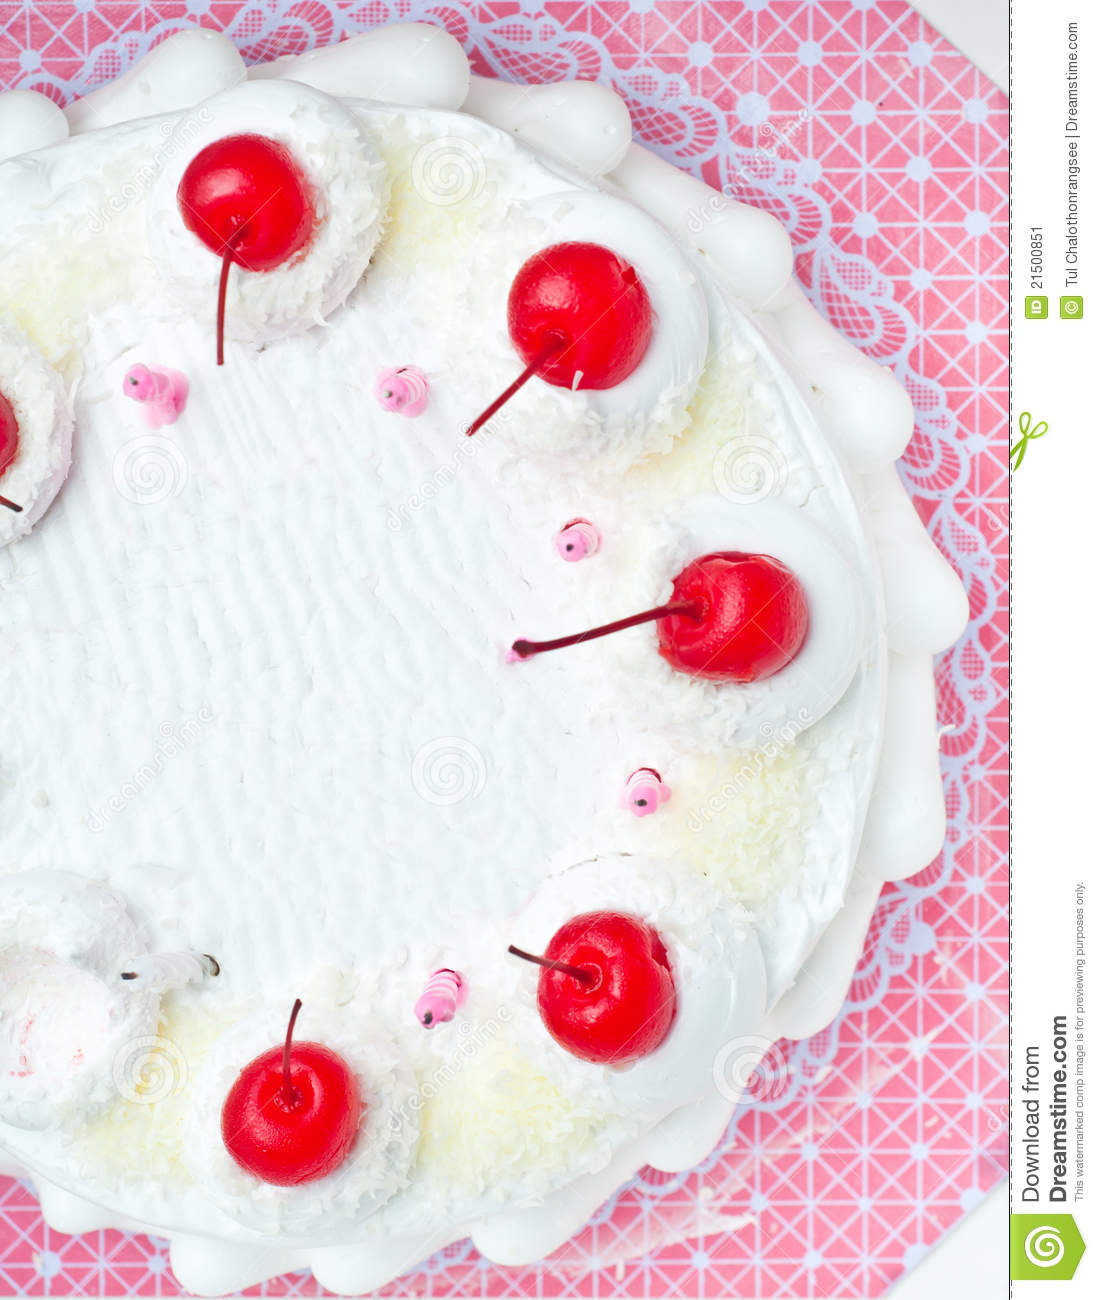 Cake Clipart Top View : Top View Of White Cake With Cherry Topping Stock Image ...